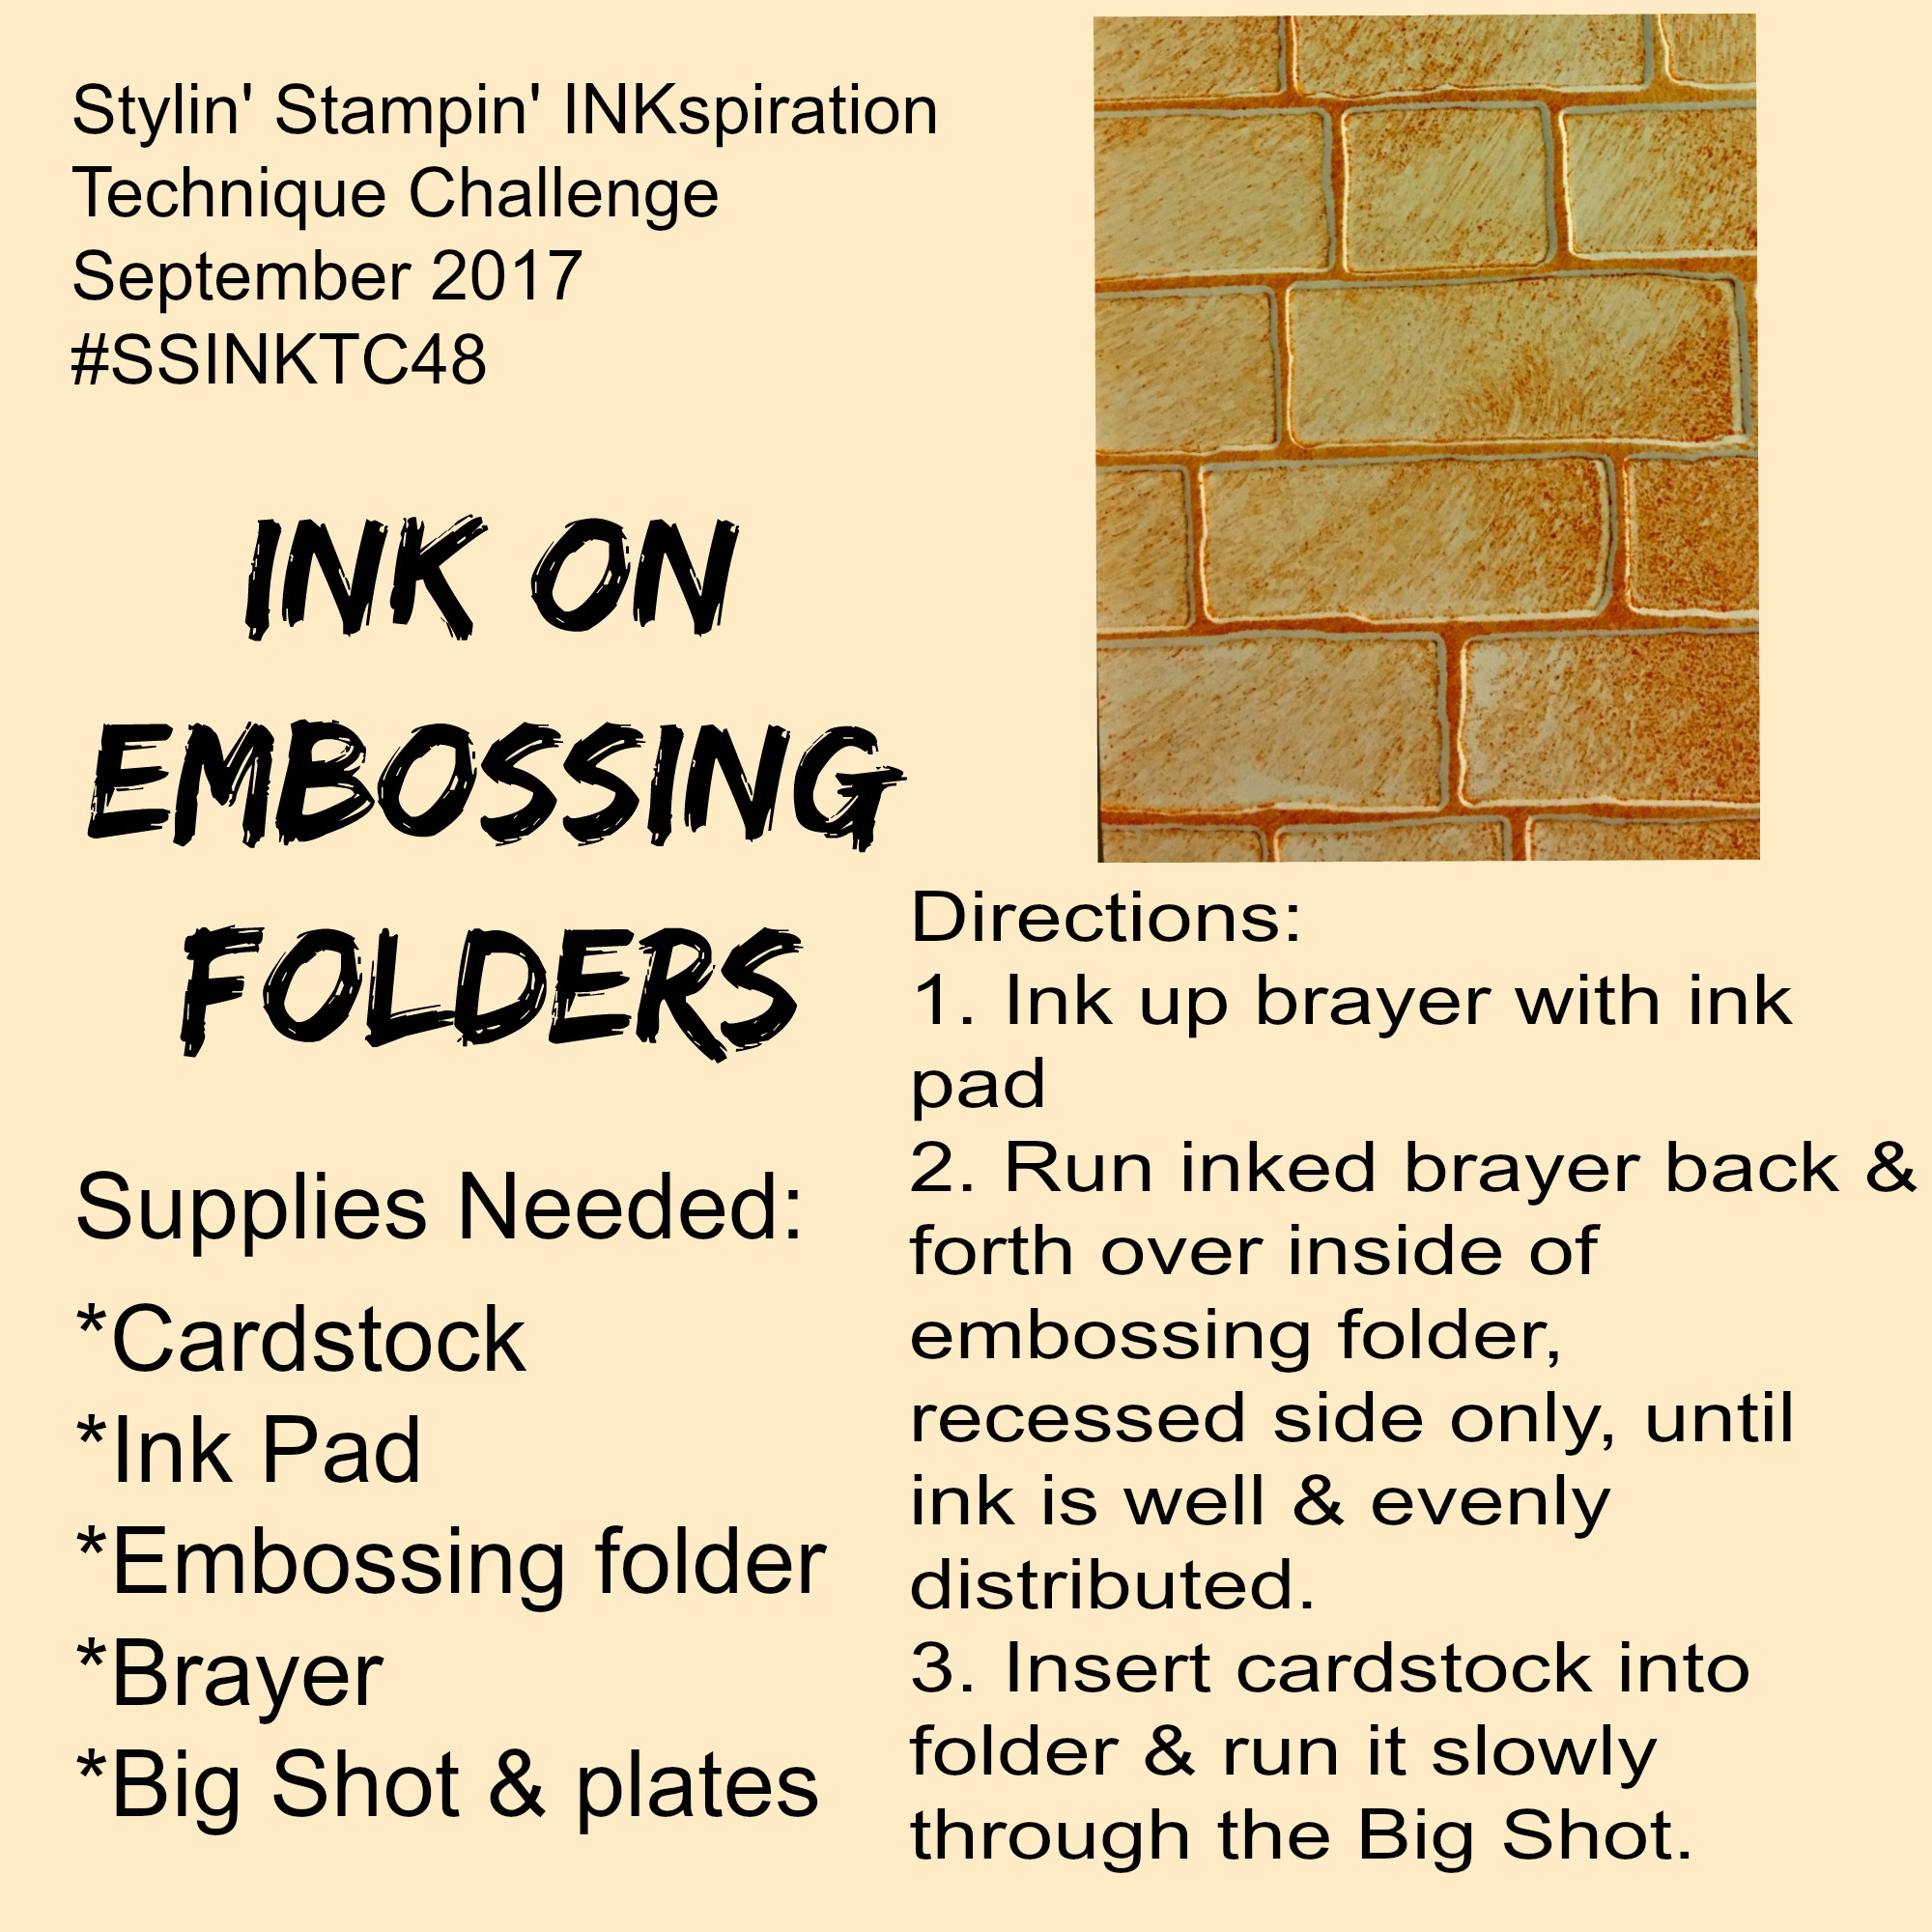 #SSINKTC48:  Ink on Embossing Folders